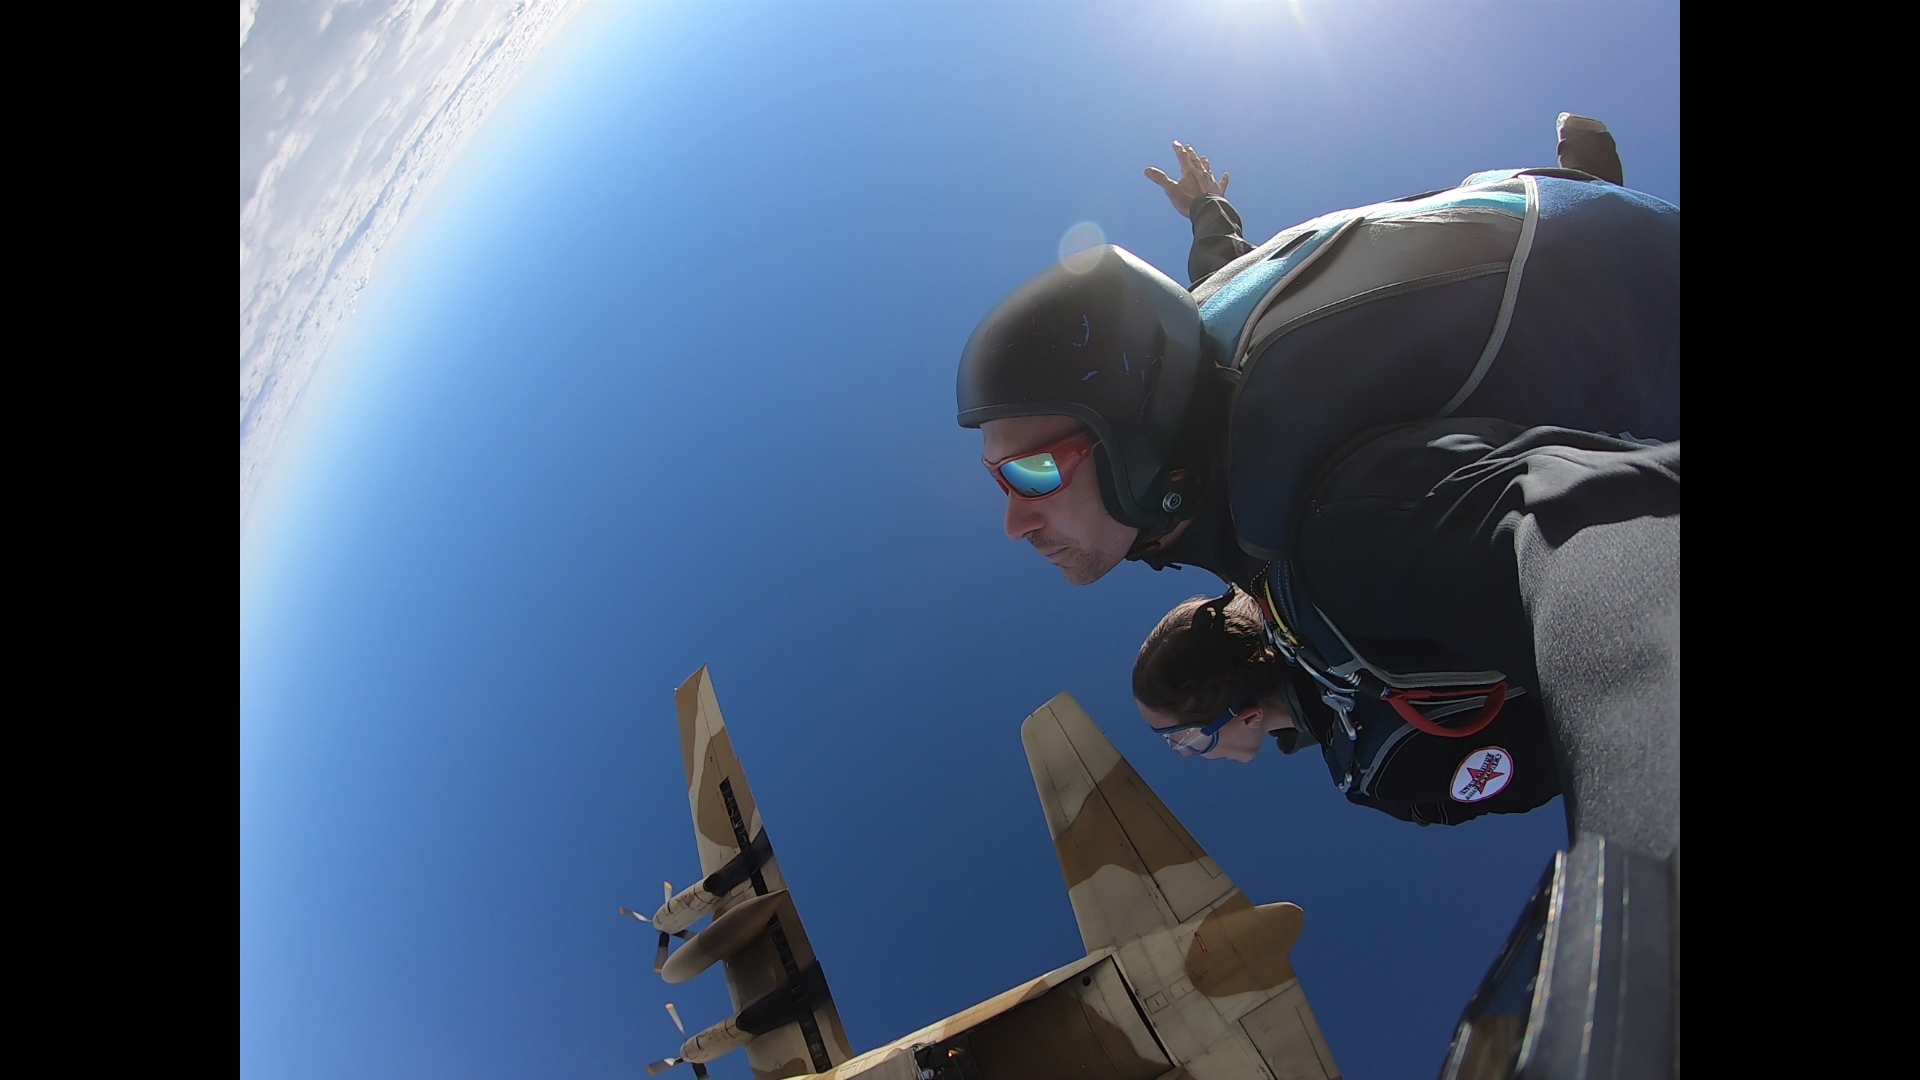 Rebecca Claxton tandem skydiving in Egypt with Ryan Jackson